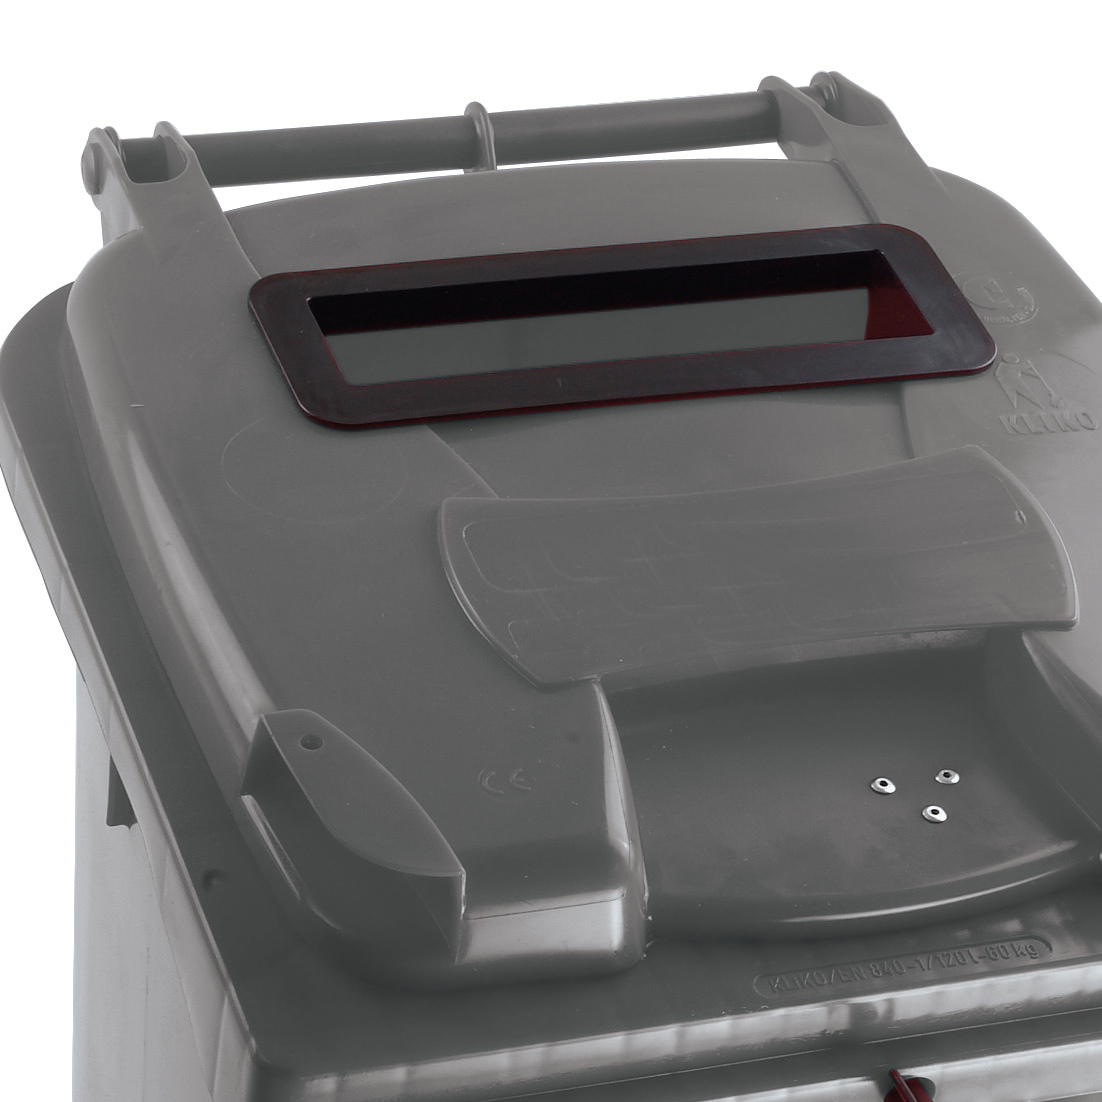 Wheeled Bin UV Stabilised Polyethylene with Rear Wheels Lid Lock 140 Litre Capacity 480x555x1070mm Grey